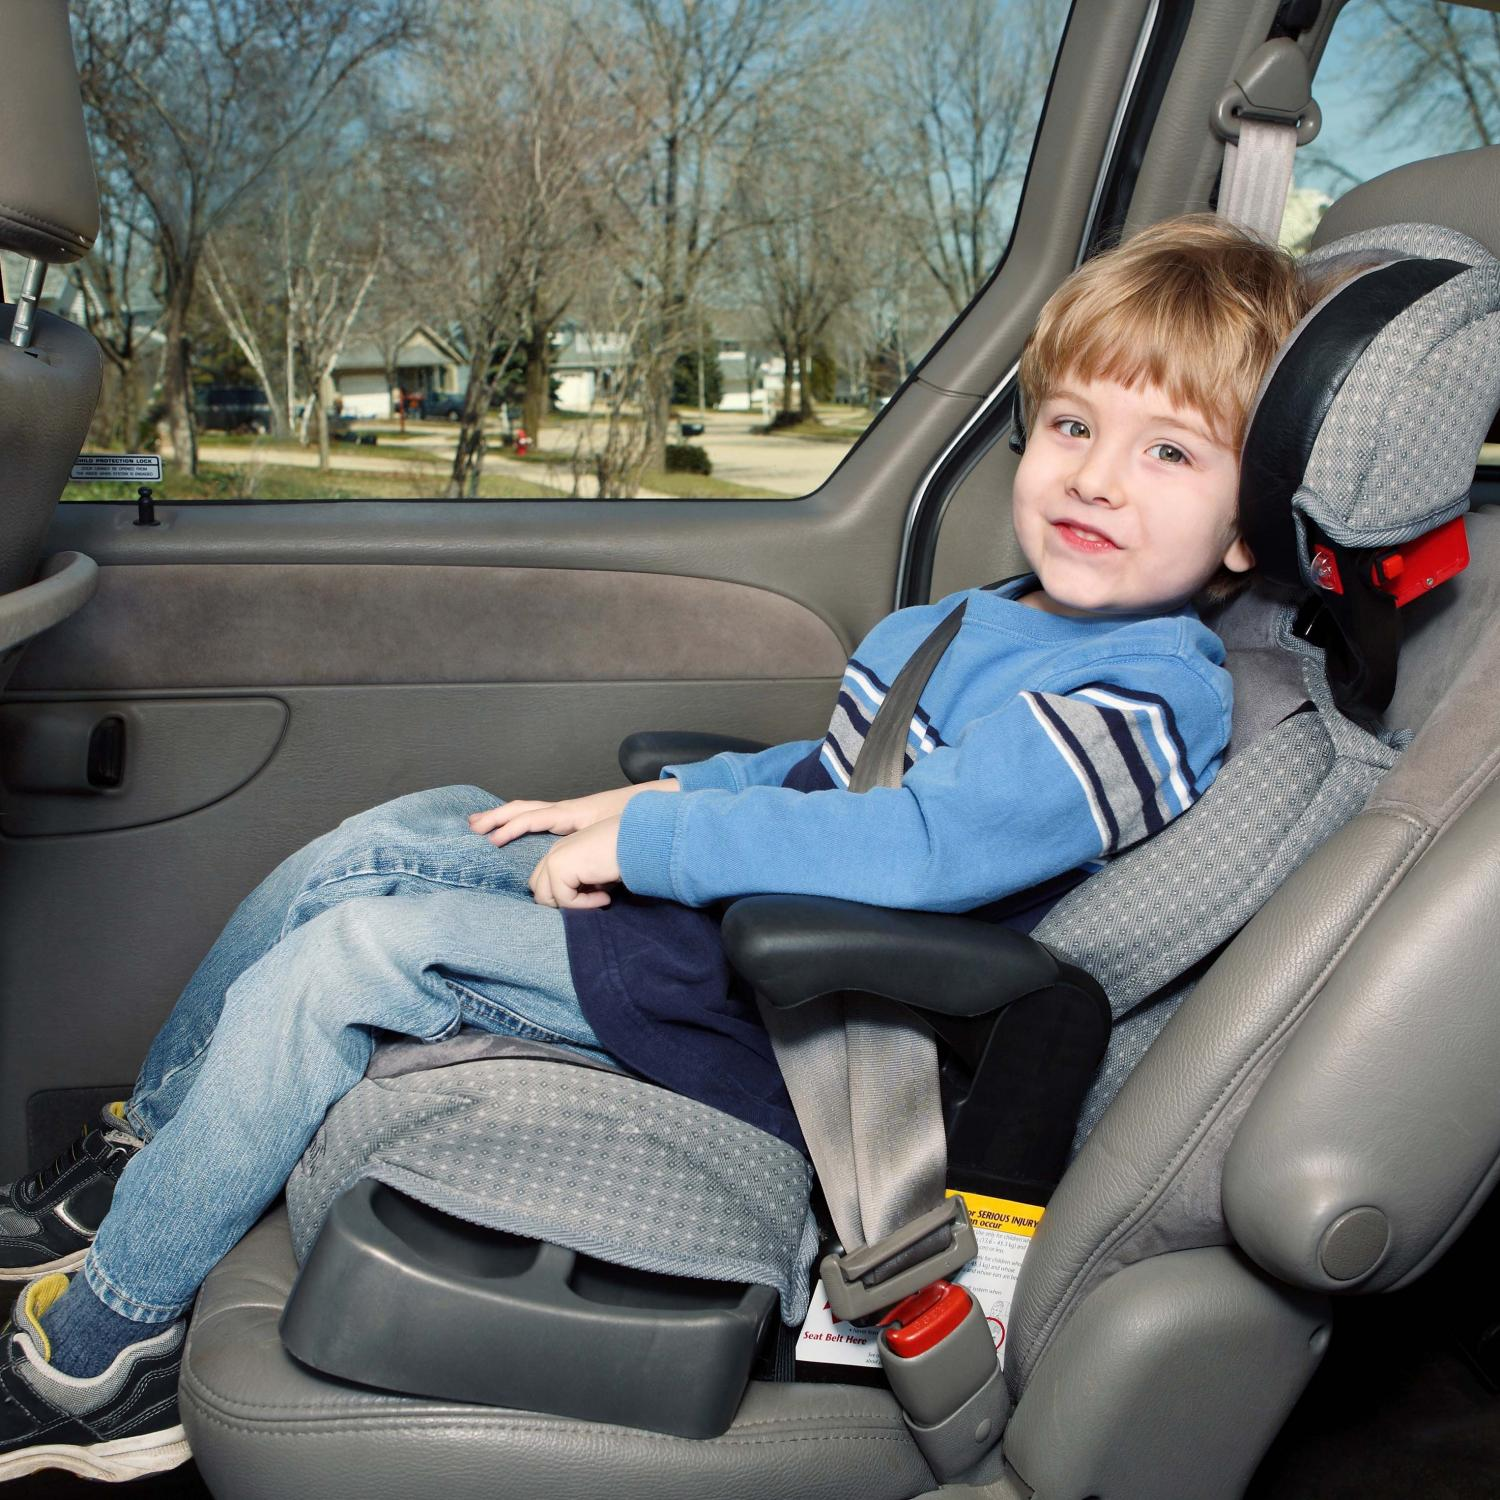 sc 1 st  Parenting & A Booster Seat: How to Know if Your Child Is Ready | Parenting